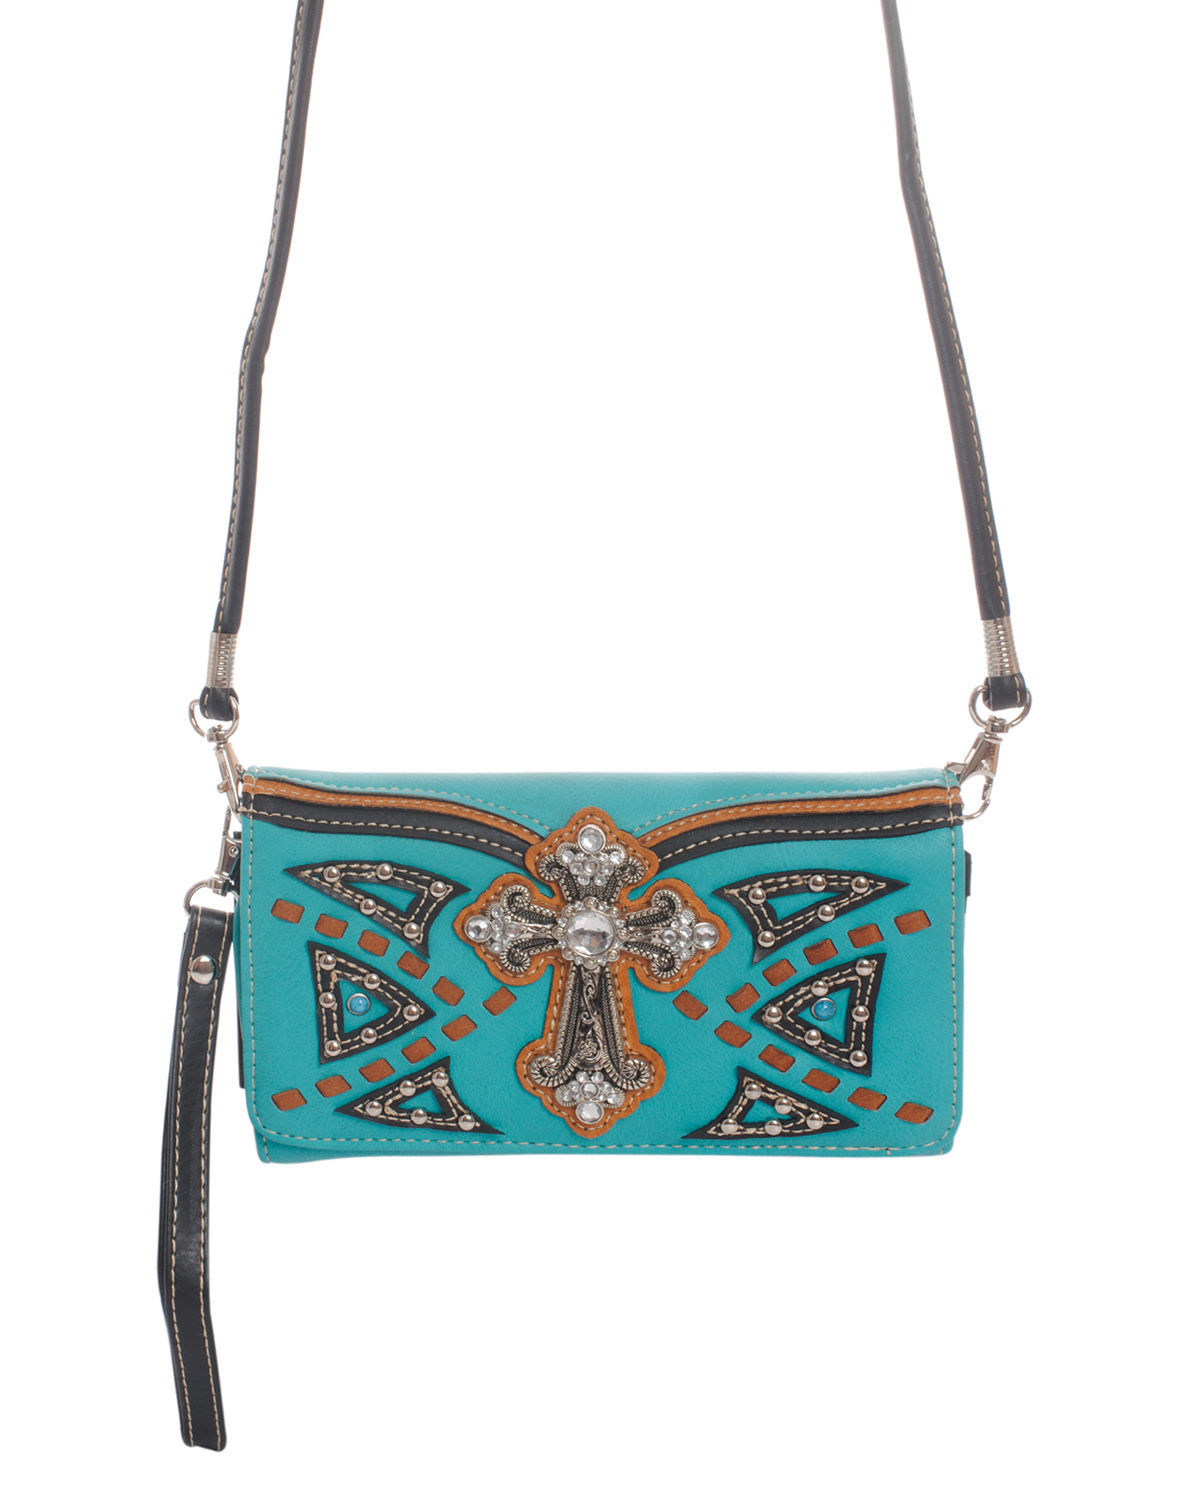 Studded Western Cross Body Shoulder Strap Wallet Clutch Purse Turquoise